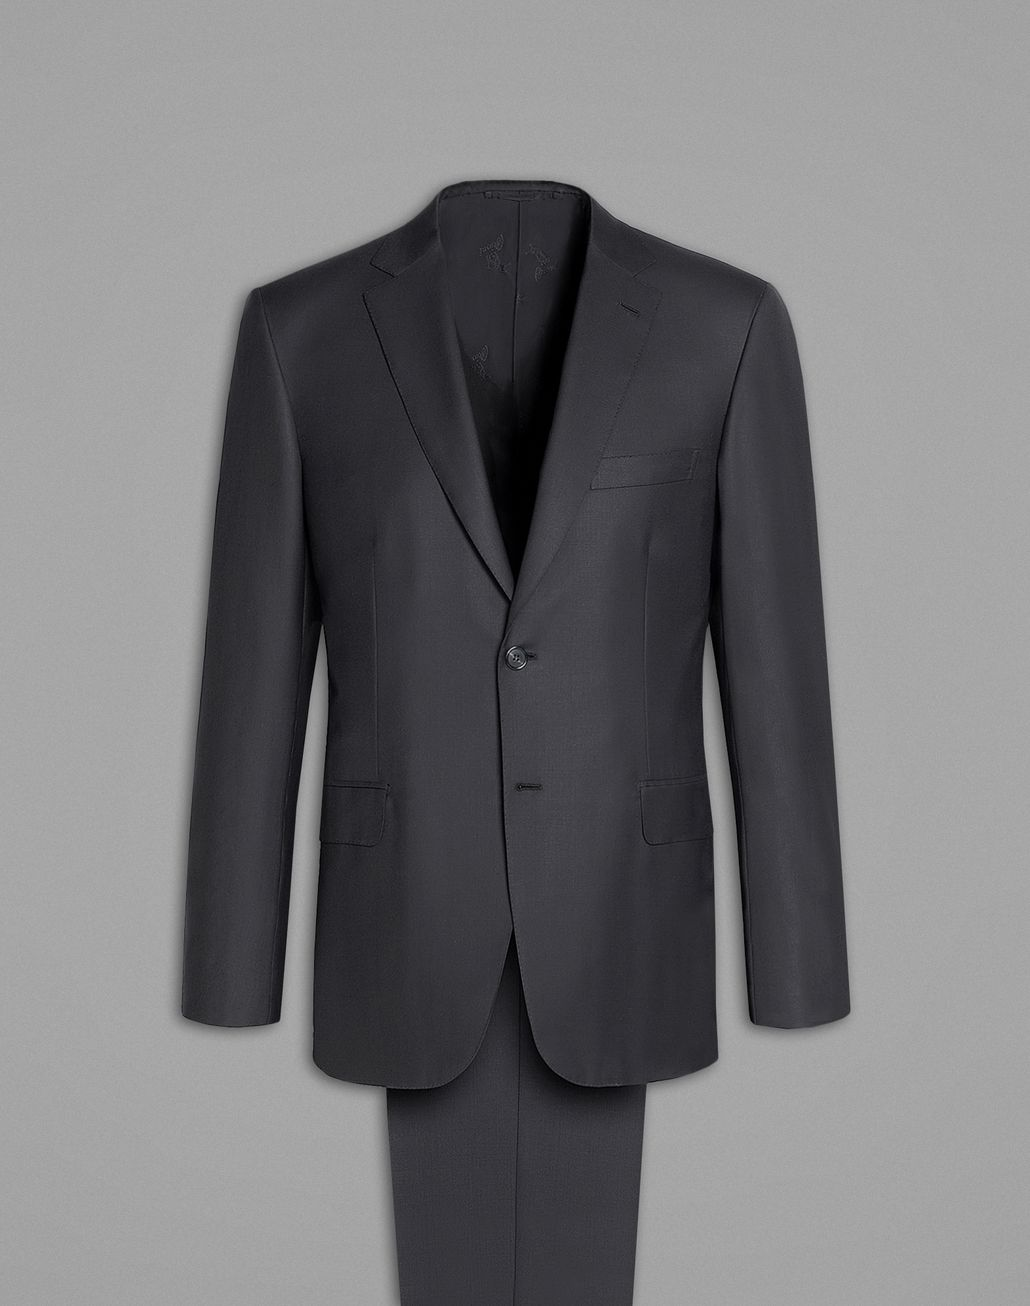 BRIONI  'Essential' Gray Brunico Suit Suits & Jackets Man f